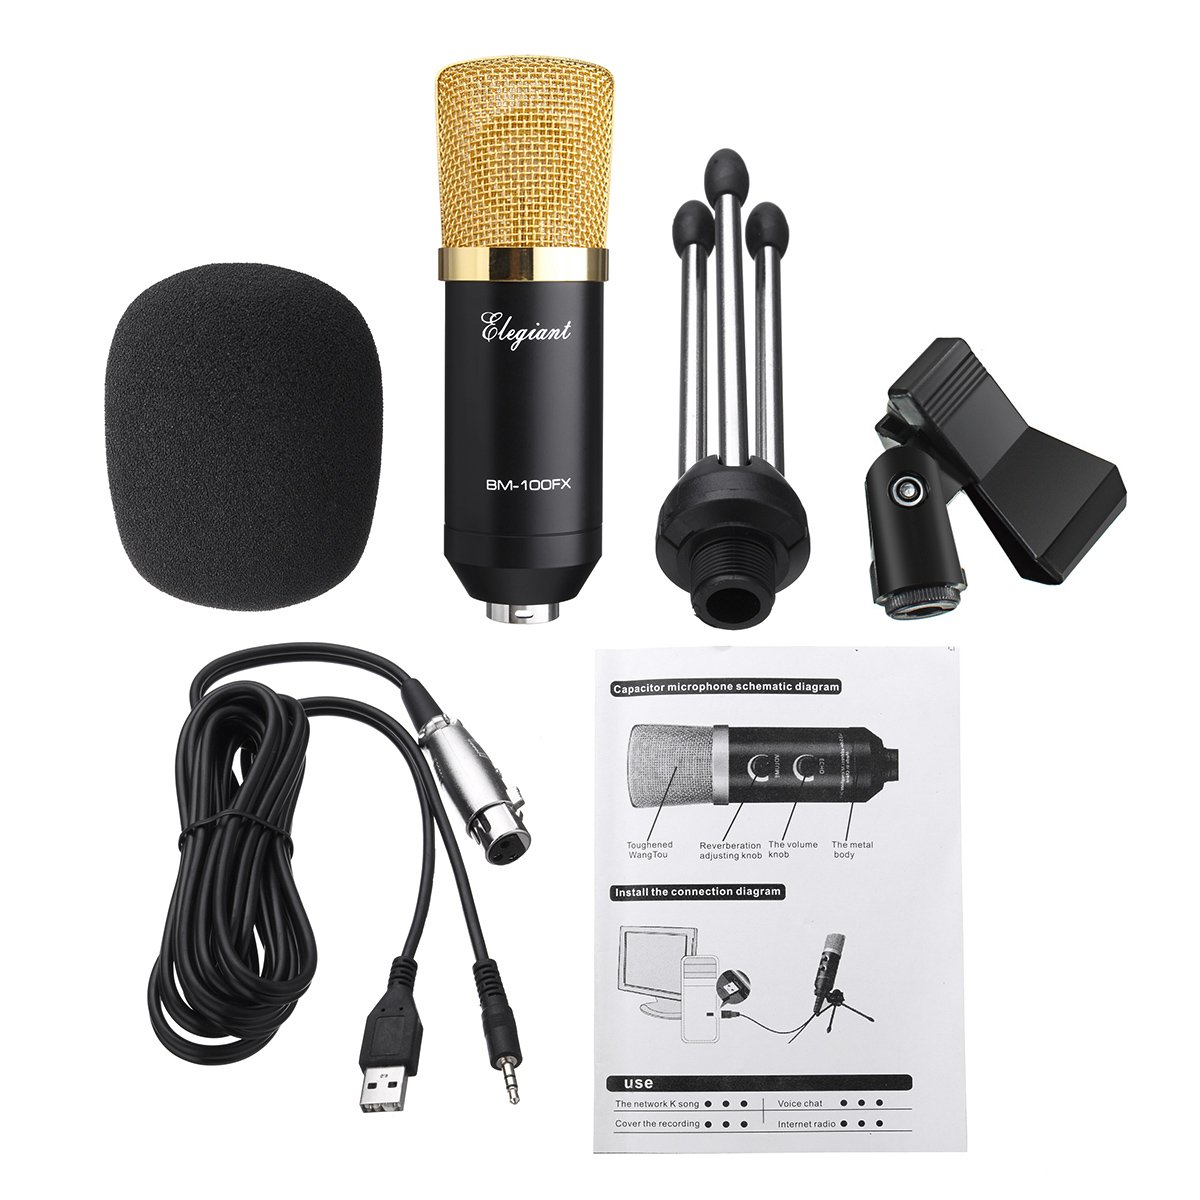 Elegiant Professional Bm 100fx Usb Microphone Condenser For Studio Schematic On Wiring Diagram Depodcast Transmission Recording And Pc Laptop With Gold Tripod Stand